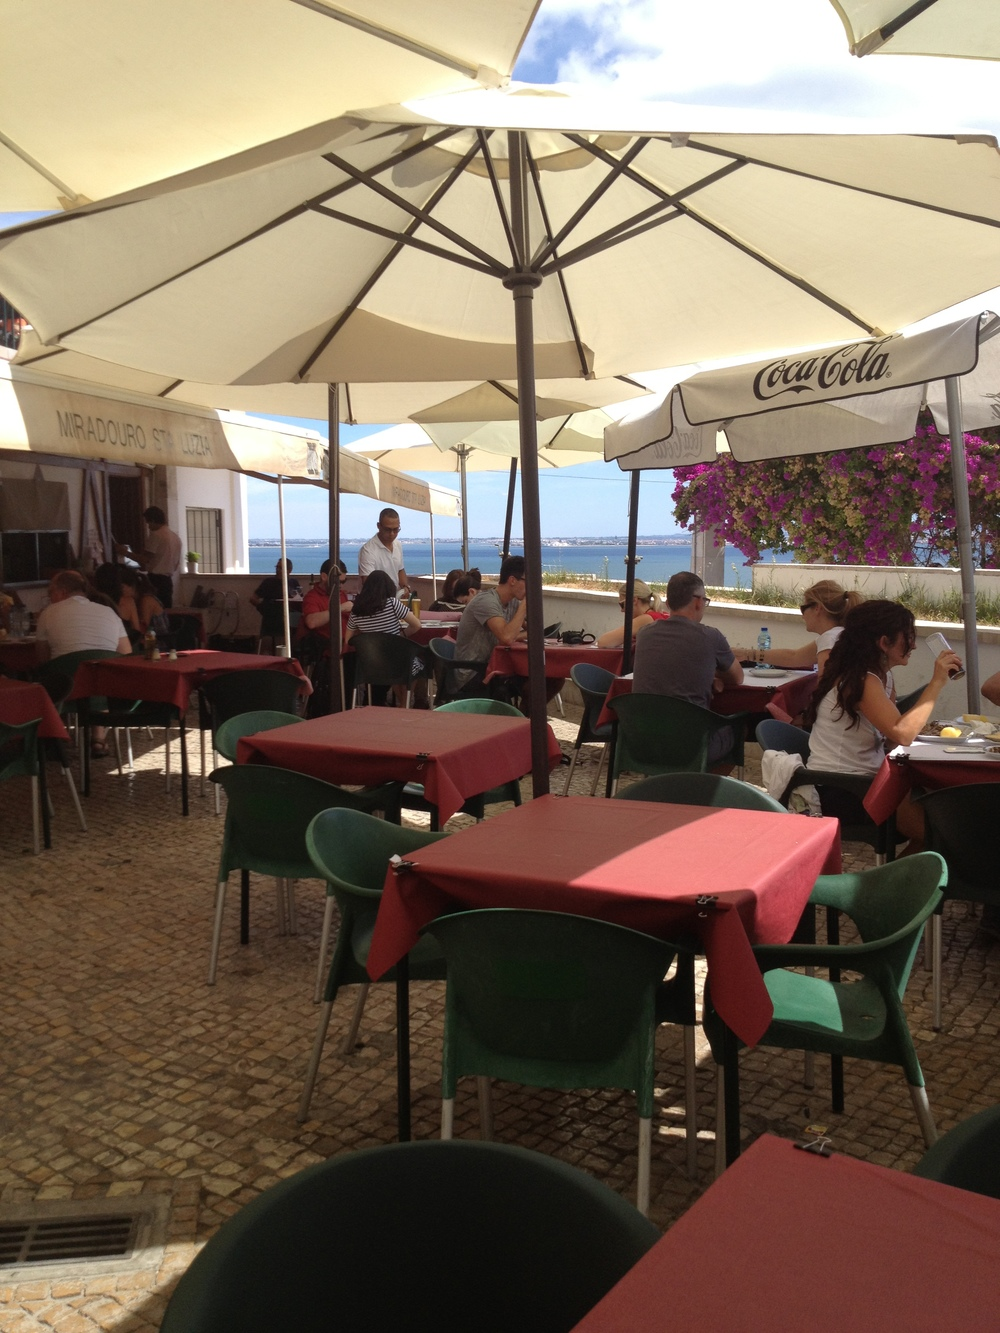 Perfect place for lunch at the Miradouro Santa Luzia